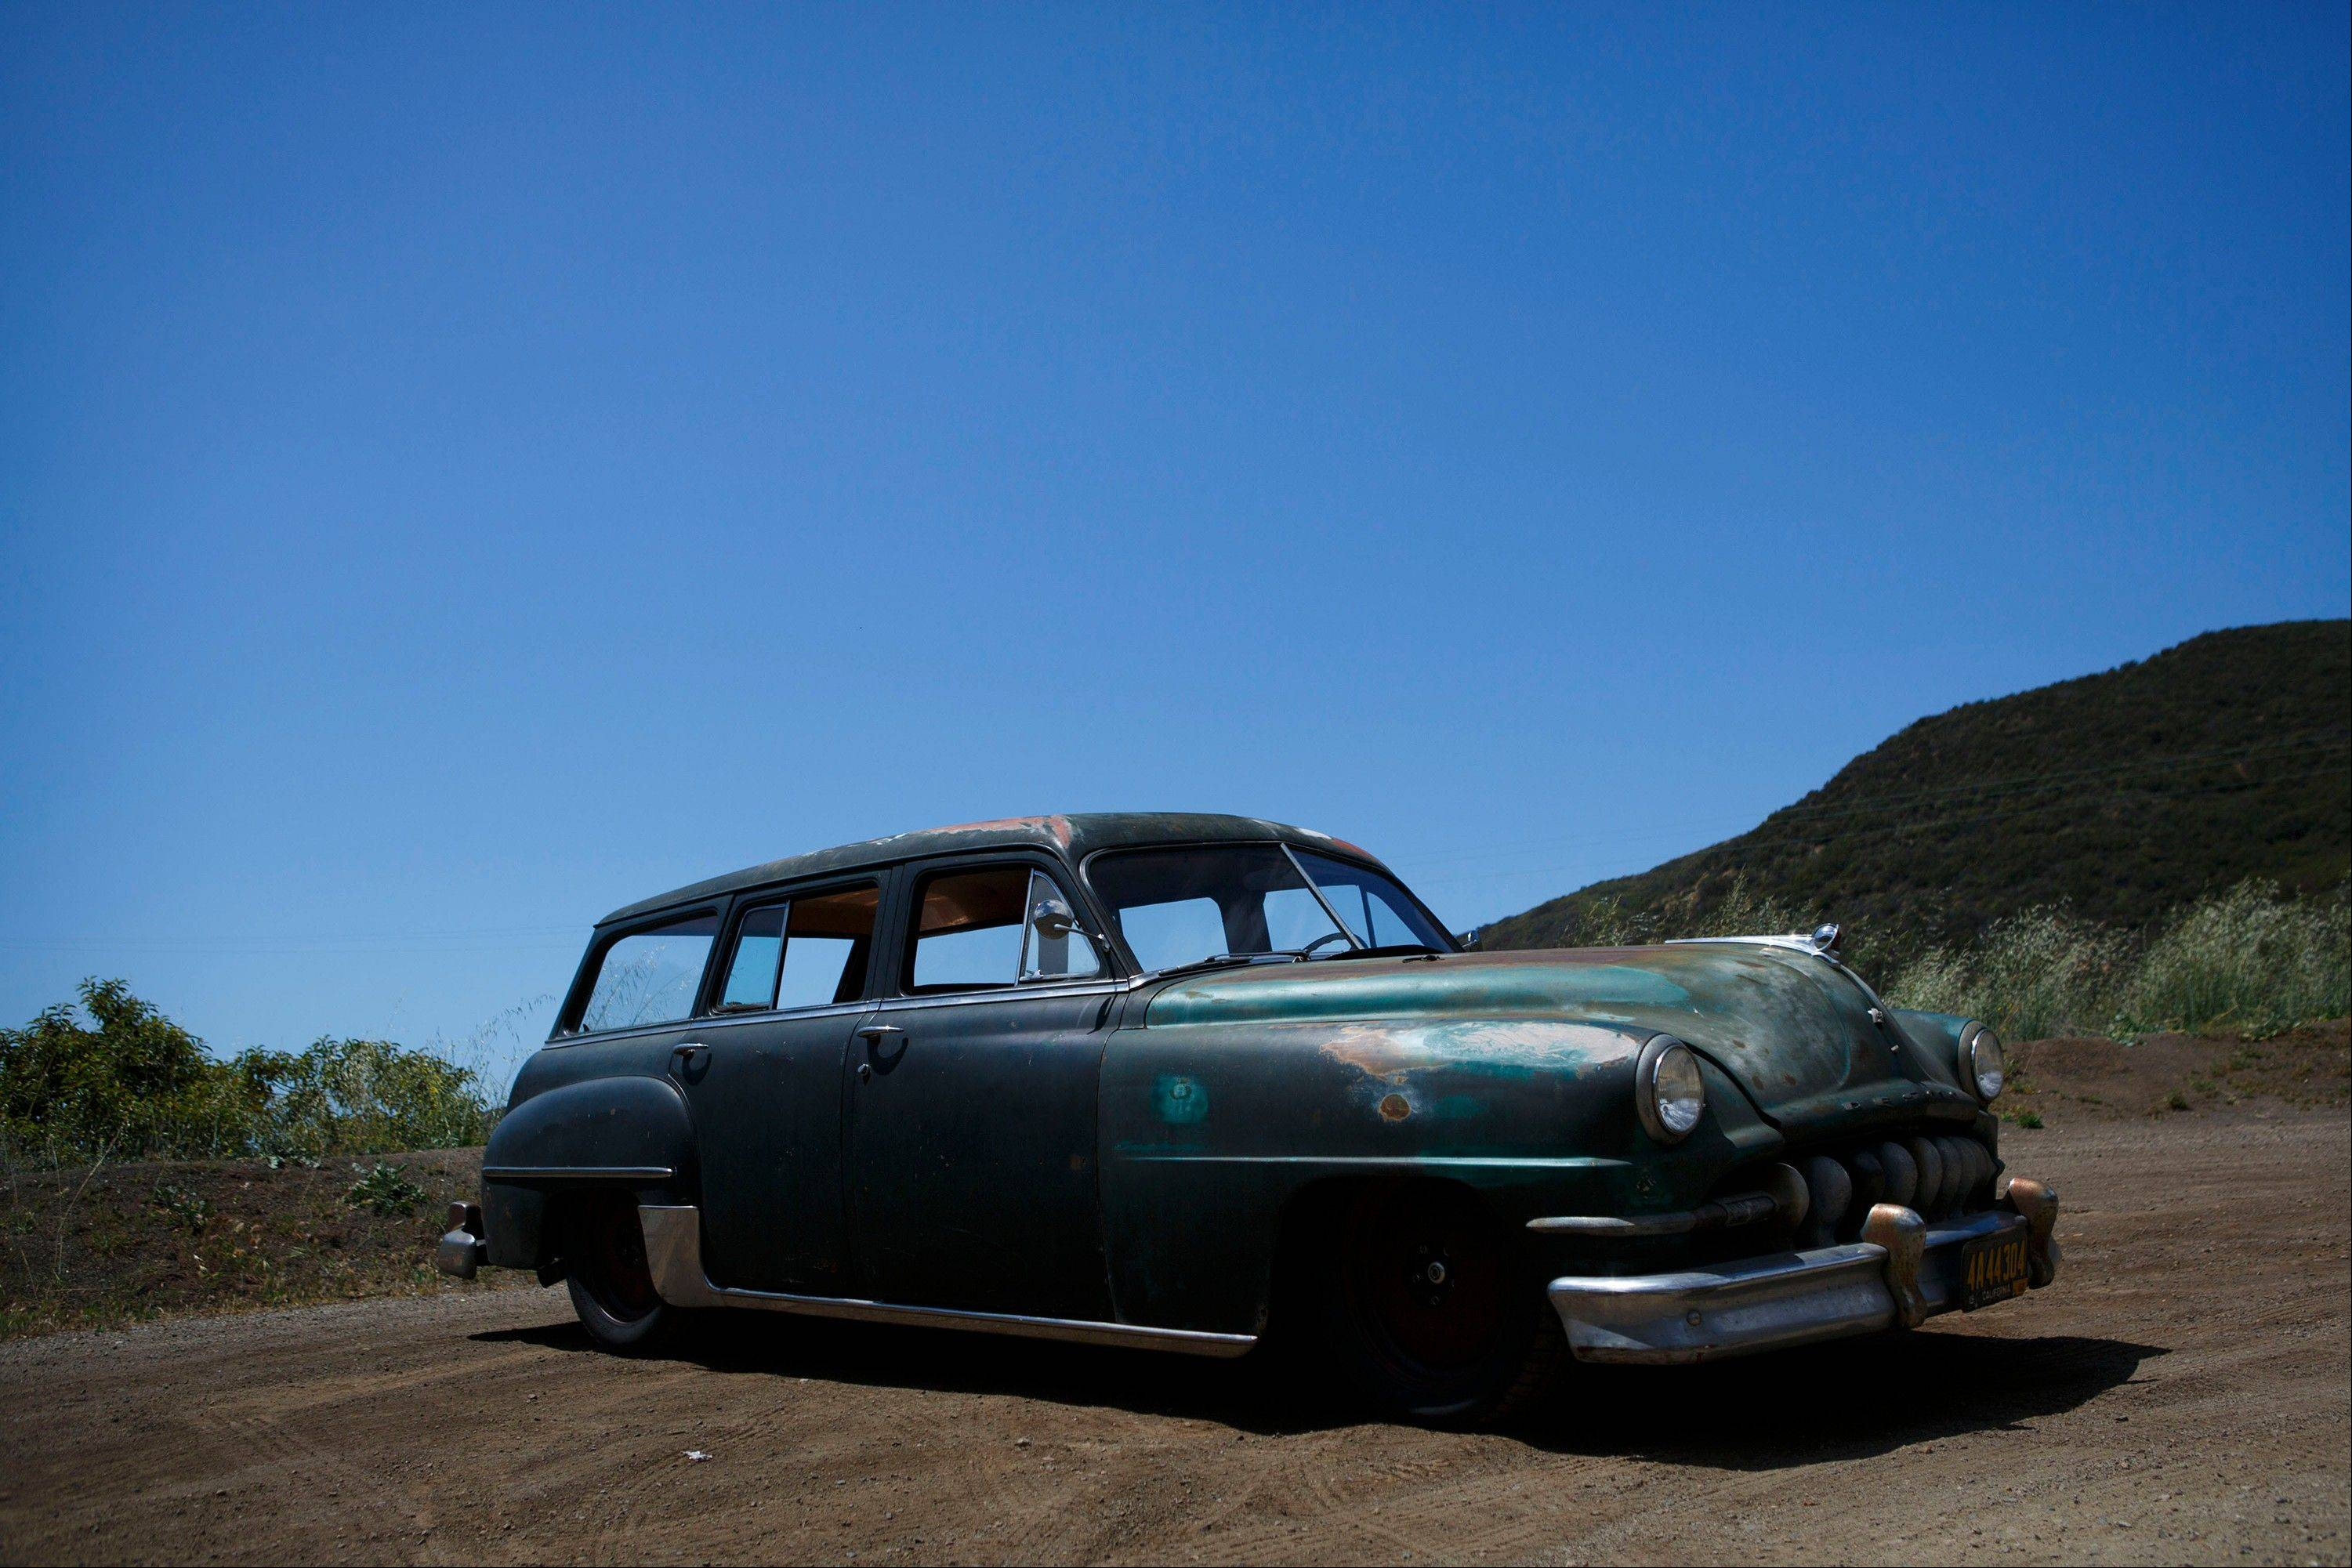 A 1952 Chrysler Town & Country Wagon, with the front end of a DeSoto, stands near Malibu, Calif.